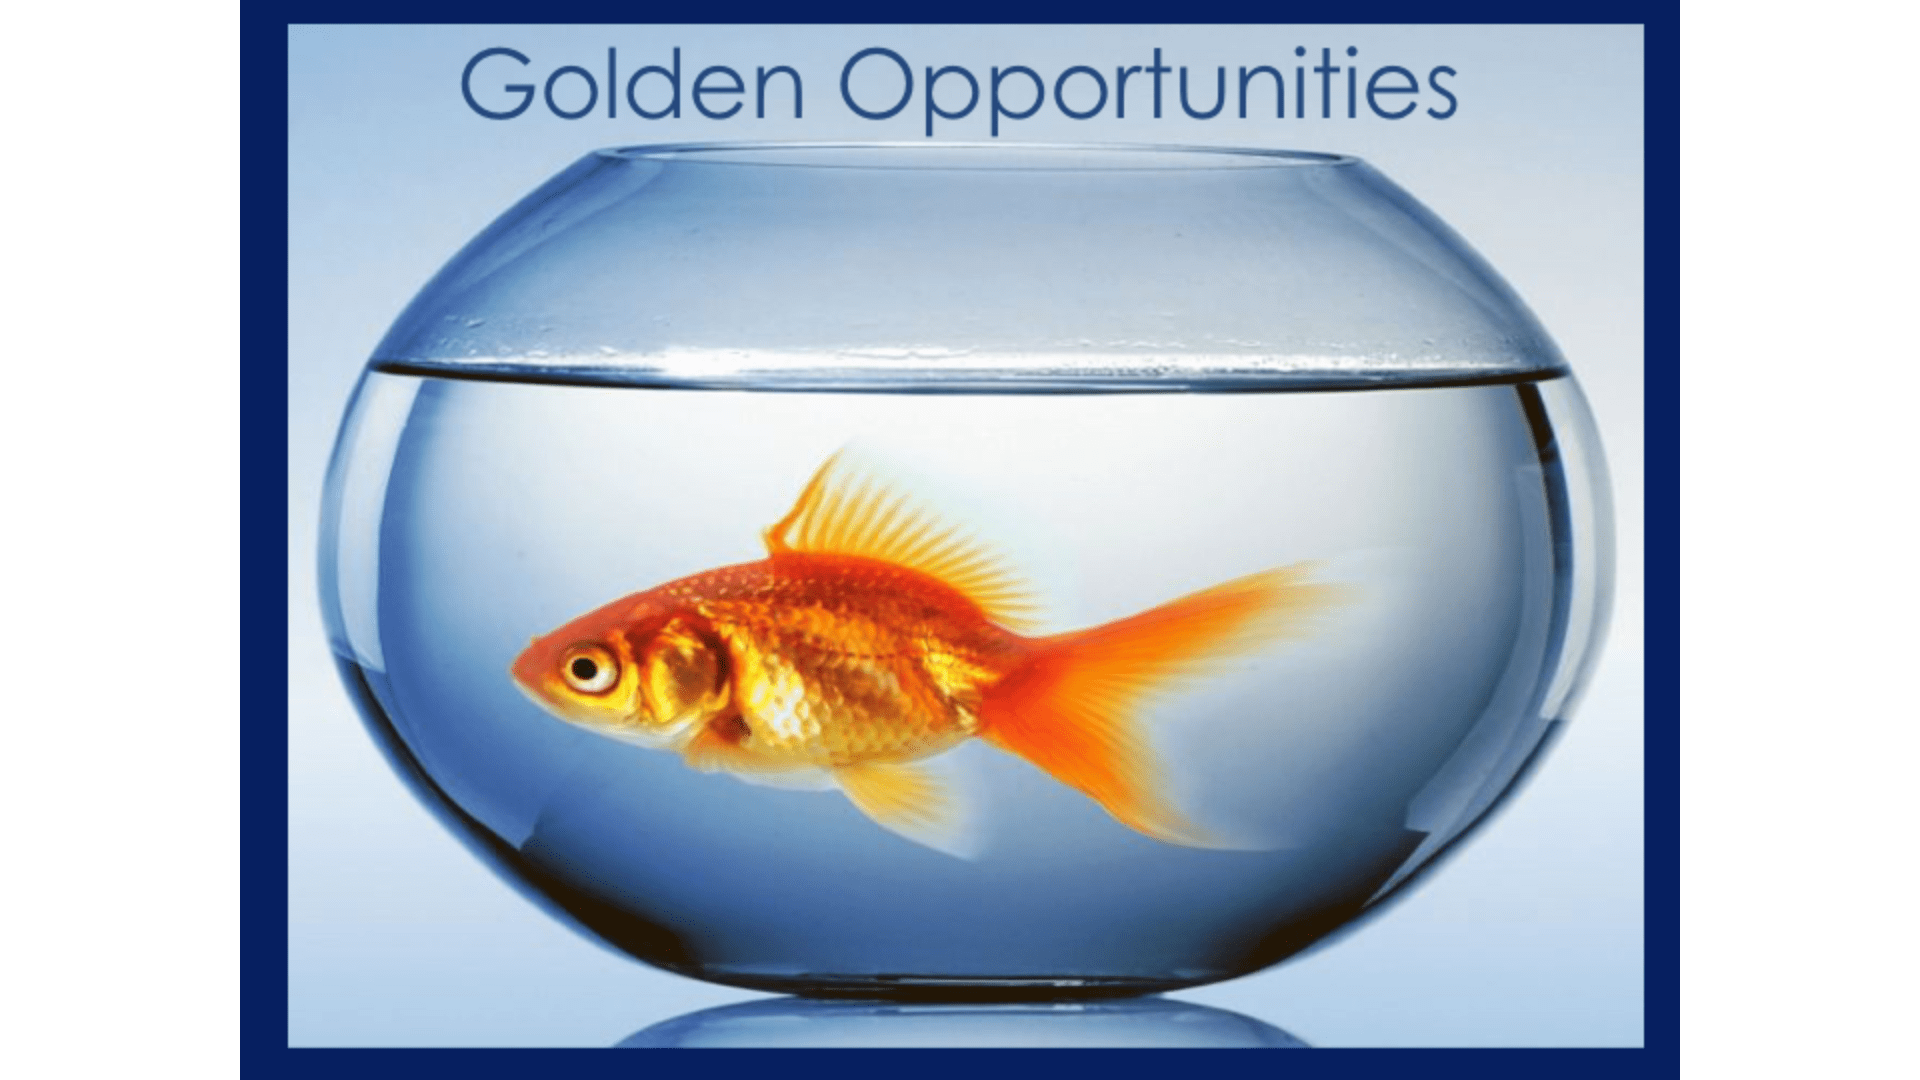 Golden Opportunities - Greg Stephens